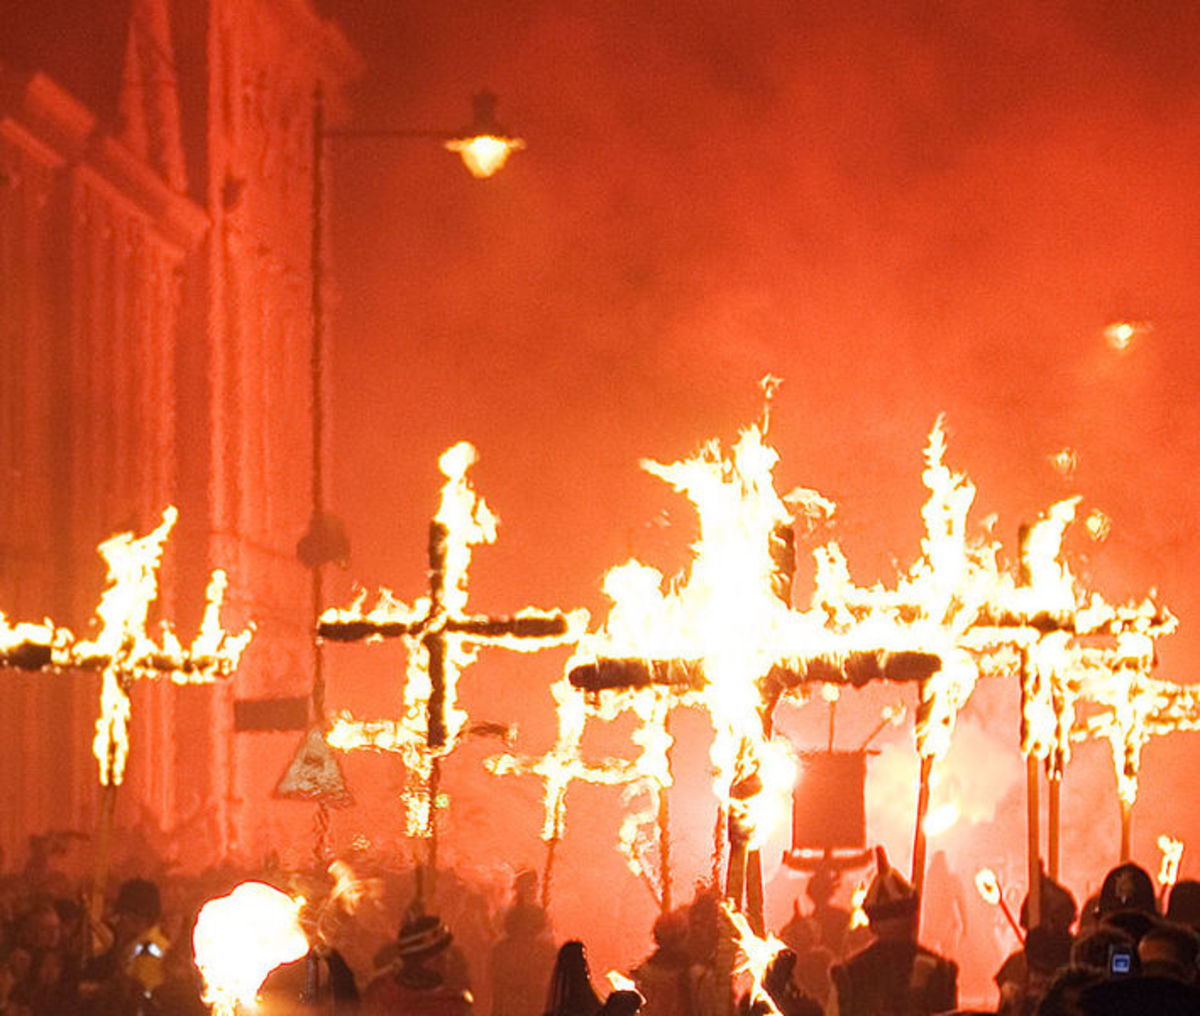 No Popery - Lewes Bonfire Night, procession, fireworks, and burning the pope! November 5th